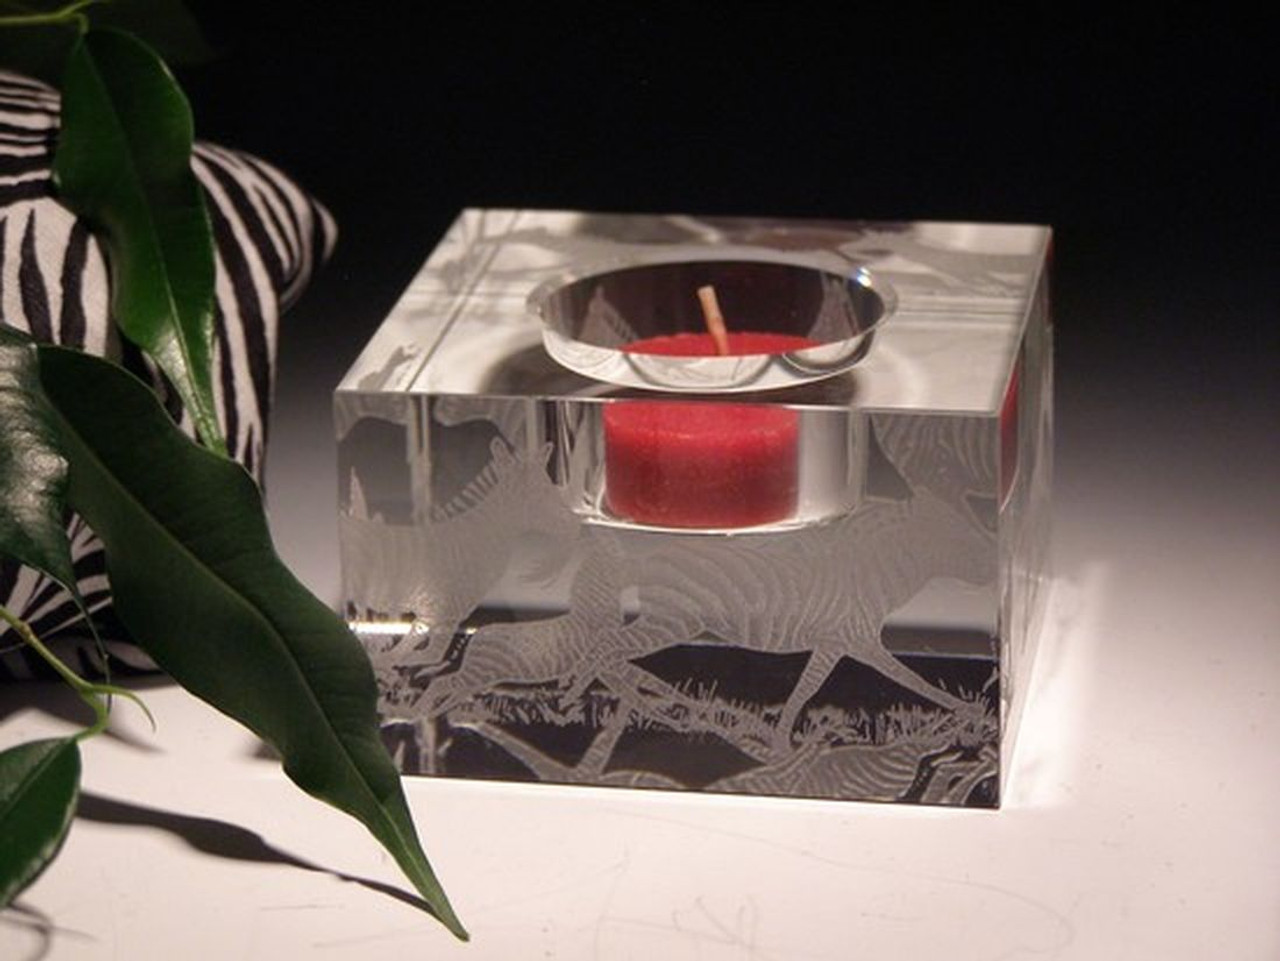 "Hand Carved Crystal Block Votive - 3"" x 3"" x 2"" - Personalized"